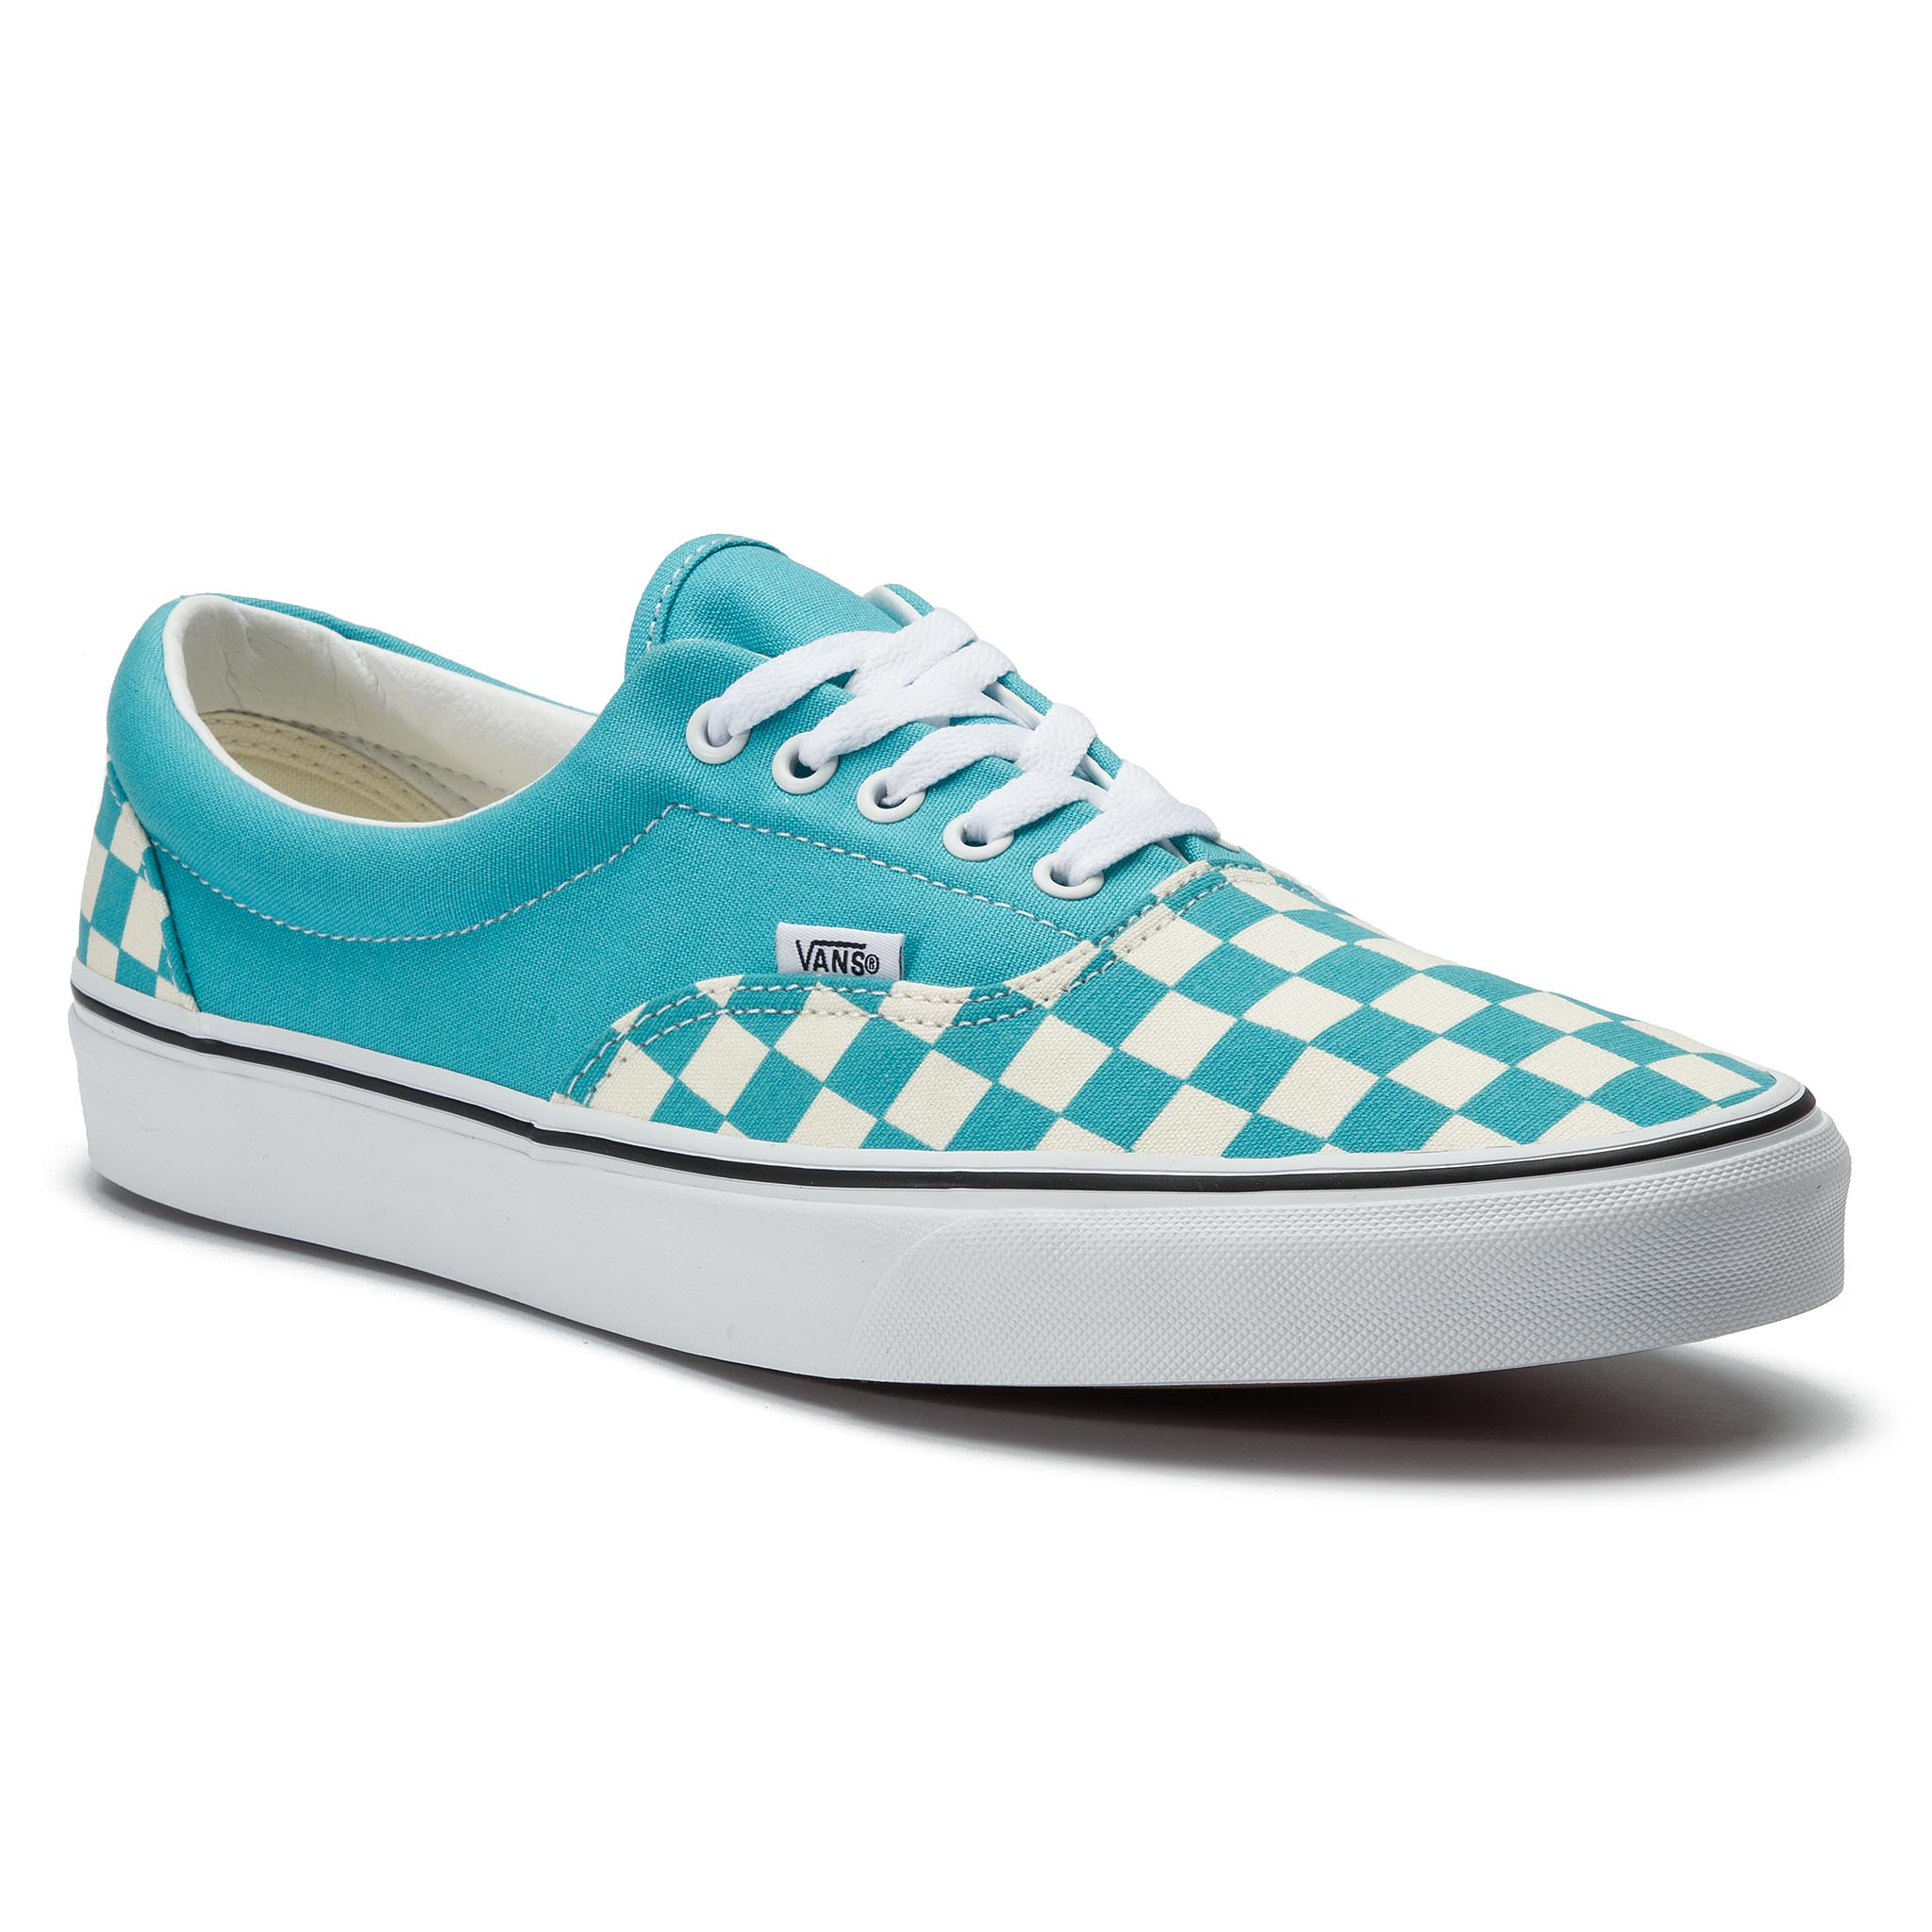 Teniși Vans - Era Vn0a38frvow1 (Checkerboard) Scuba Blue imagine epantofi.ro 2021